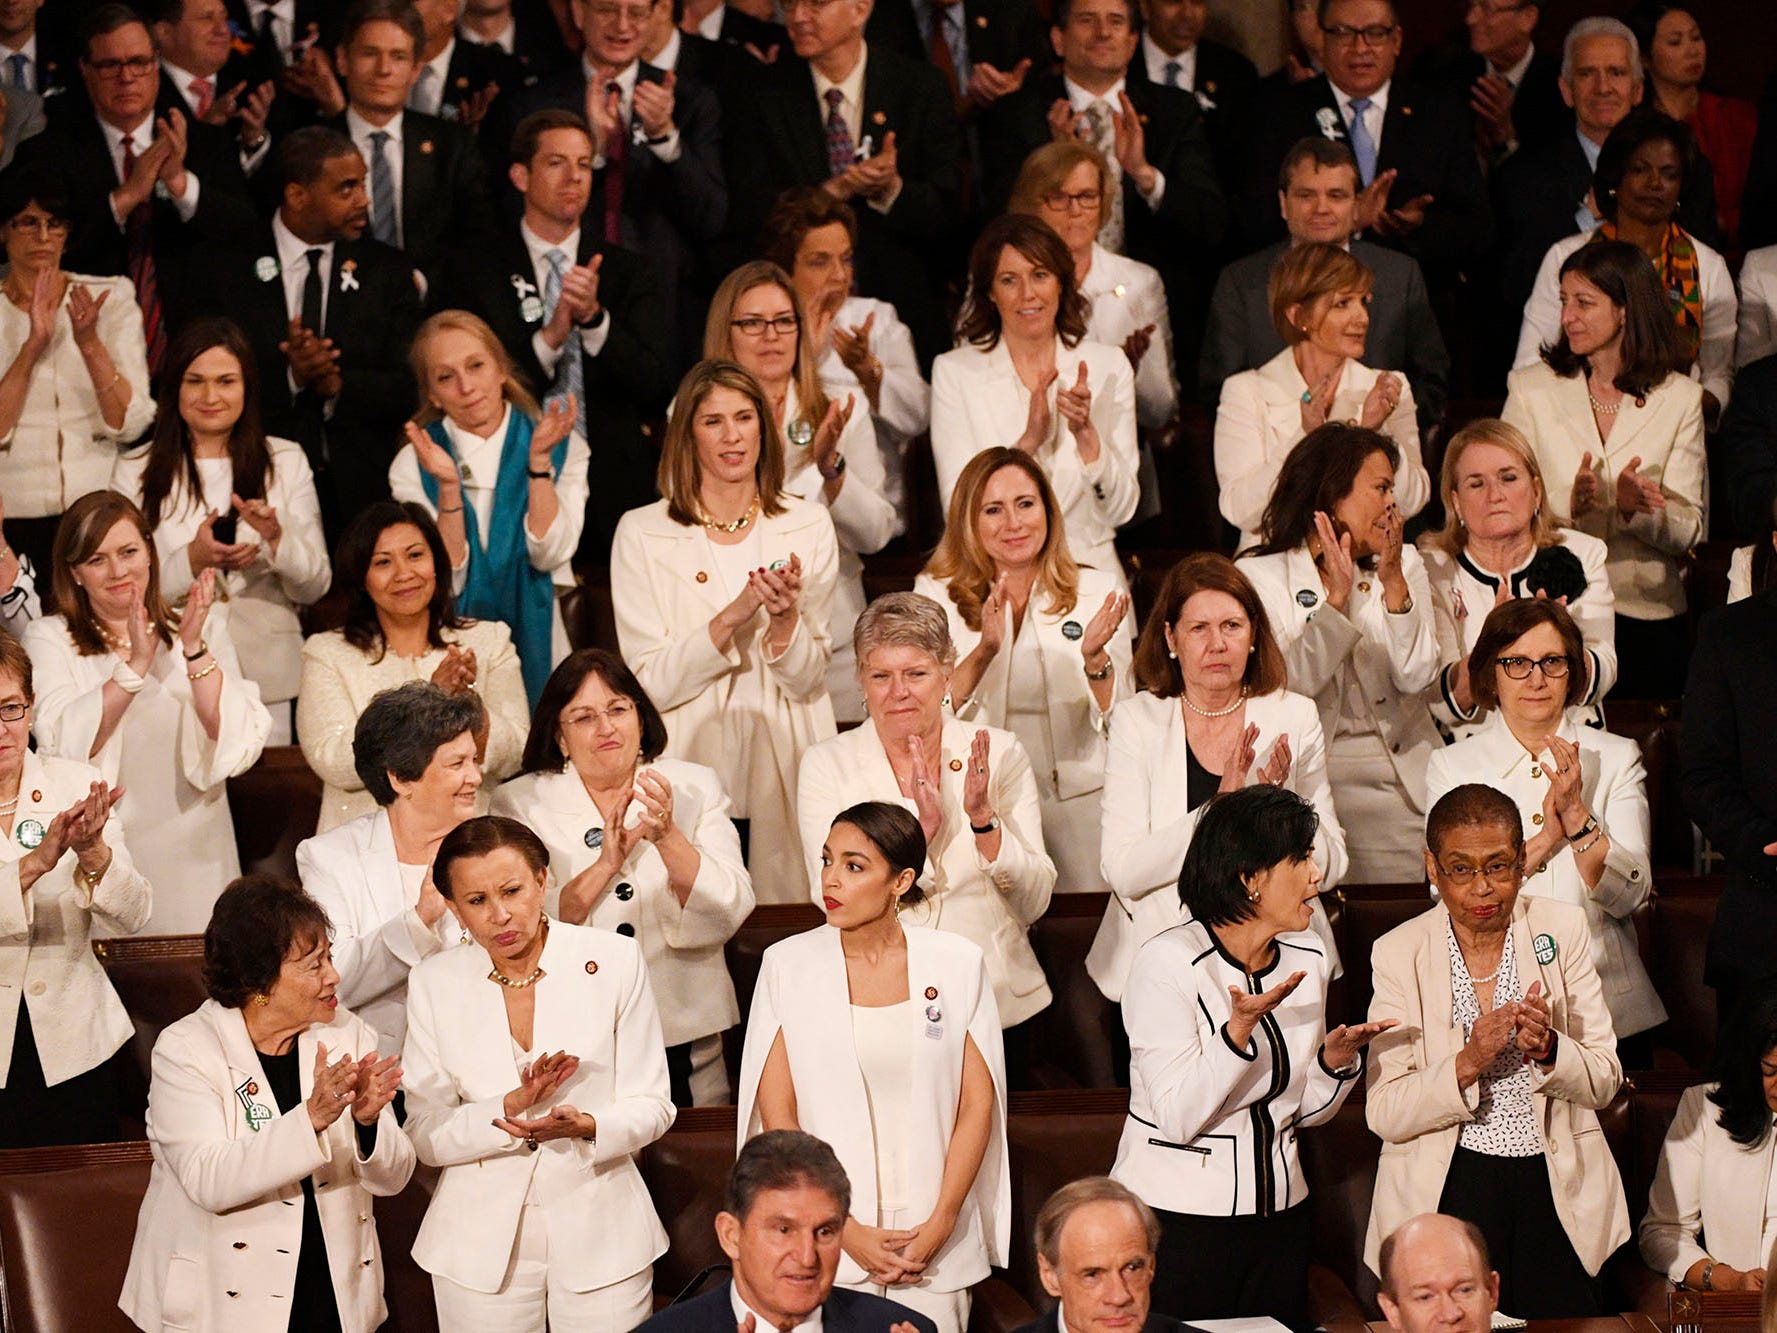 Congresswomen are recognized by President Donald Trump as he delivers the State of the Union address. The white color choice they wear is meant to honor the women's suffrage movement that led to the ratification of the 19th Amendment in 1920.